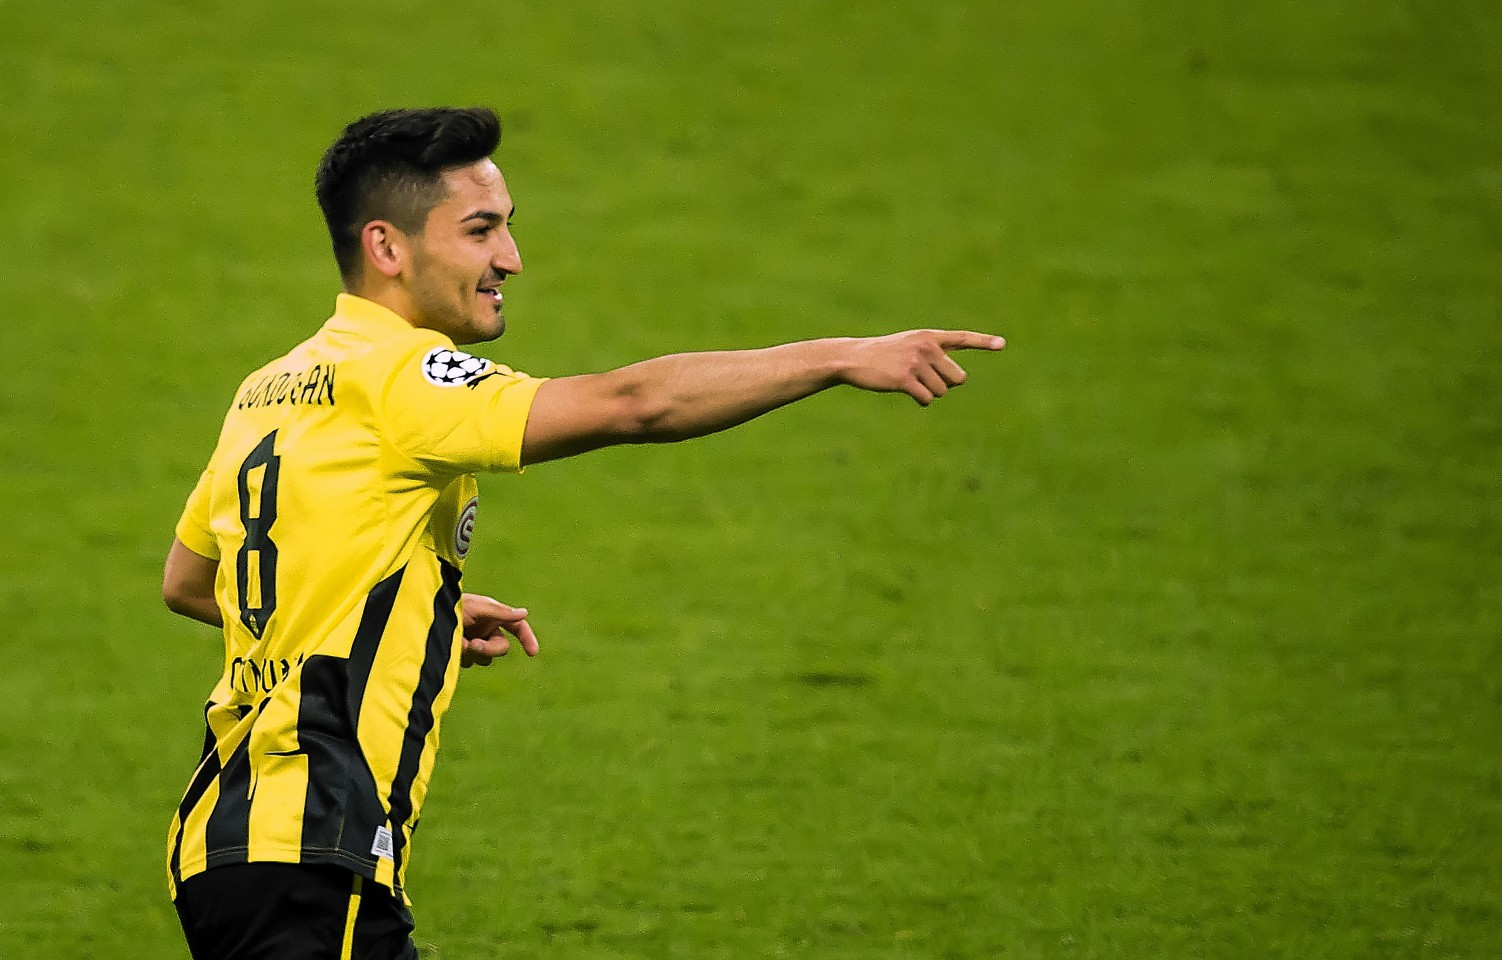 Highly rated German, Ilkay Gundogan, has been linked with a move to the English Premier League